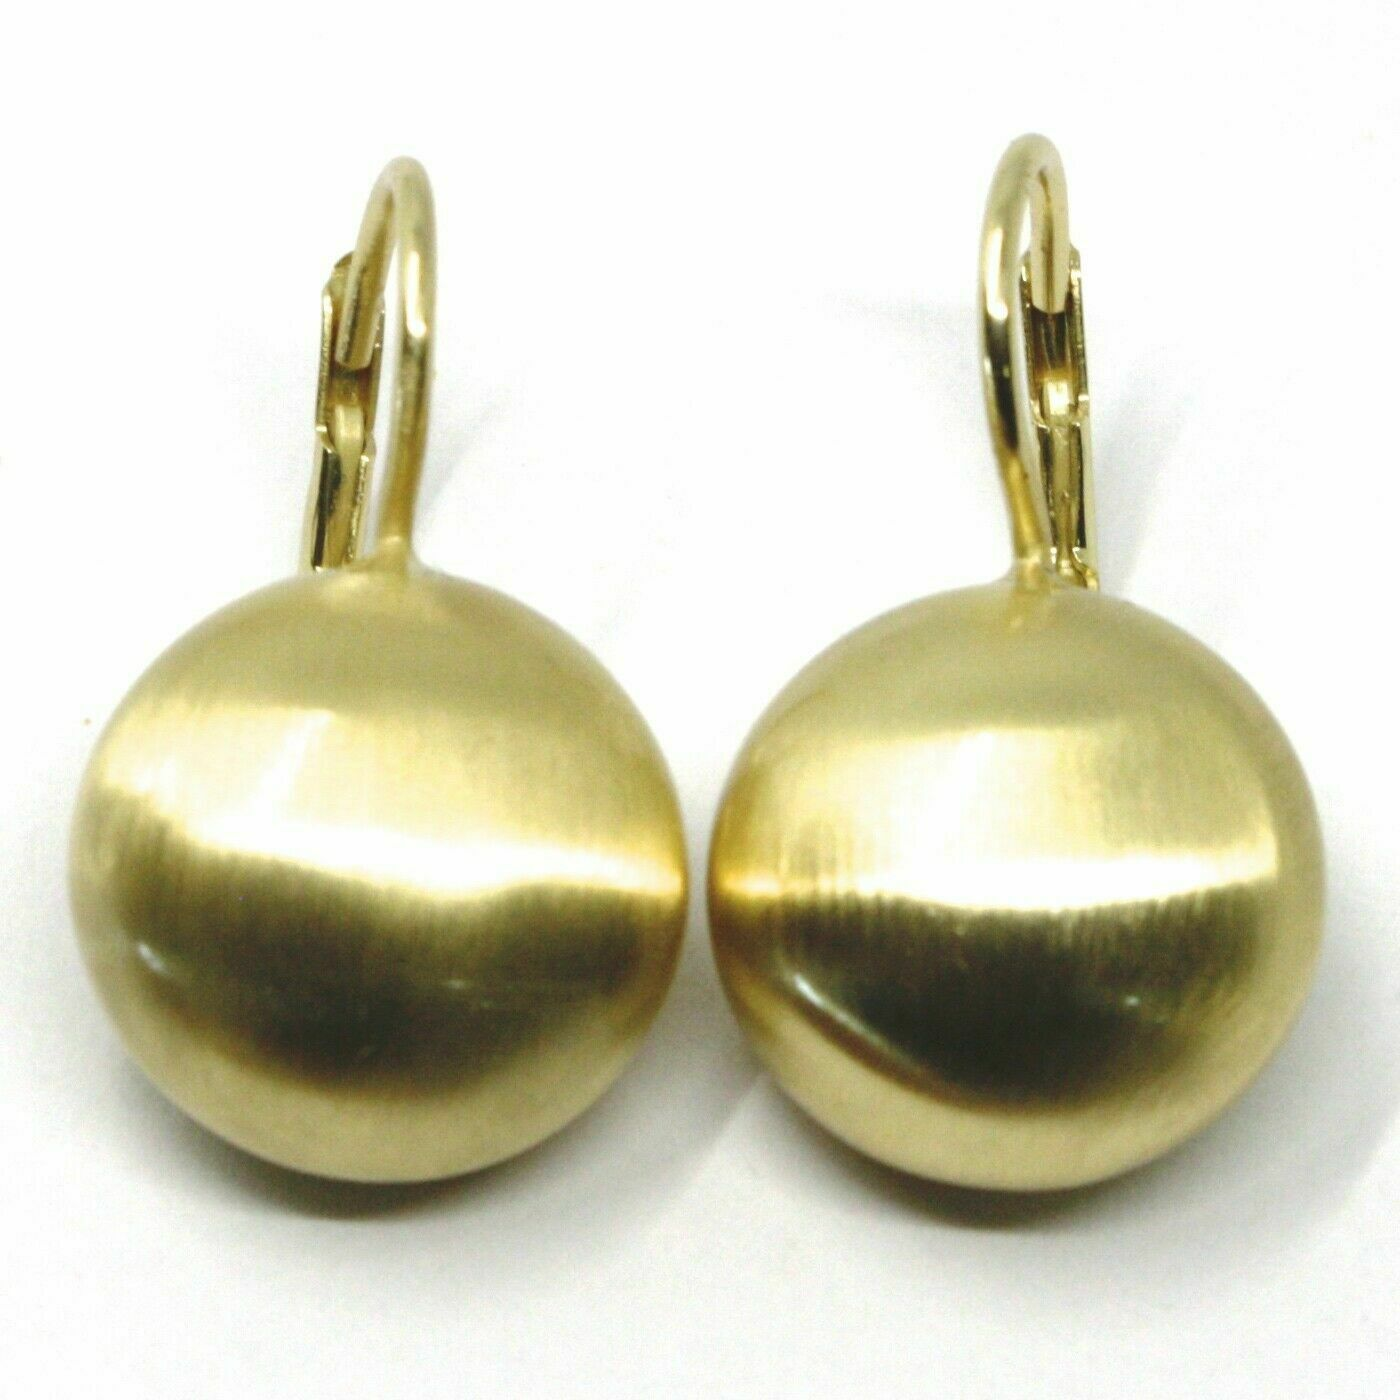 Aquaforte Earrings in Silver 925 with Disk 16 MM Gold Made in Italy